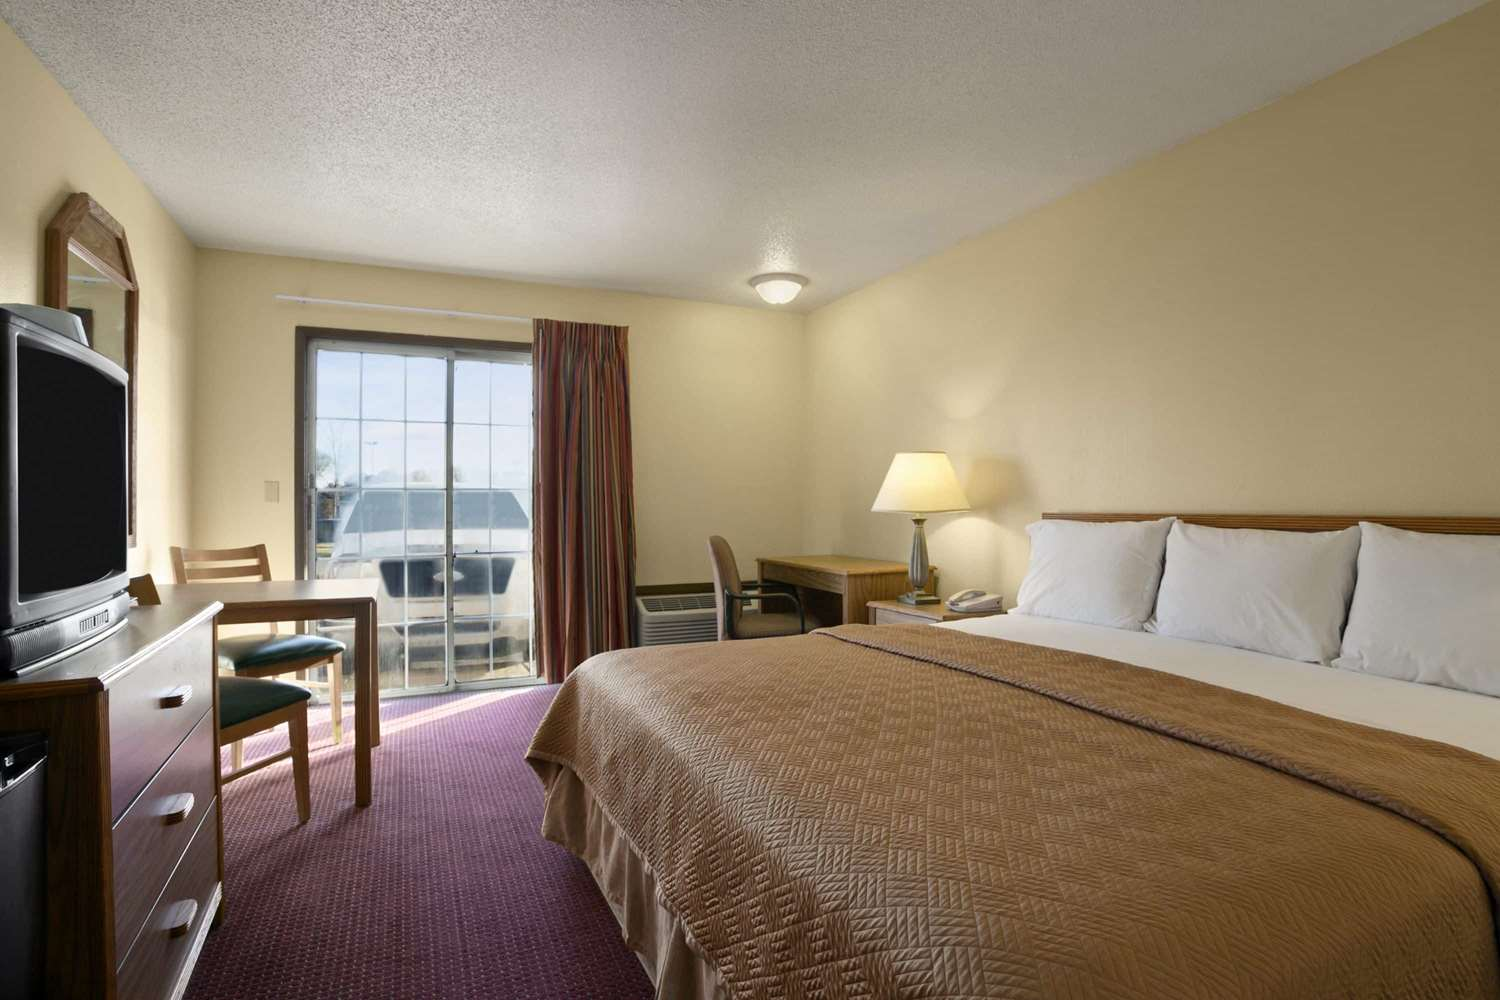 Room - Travelodge Inn & Suites Muscatine